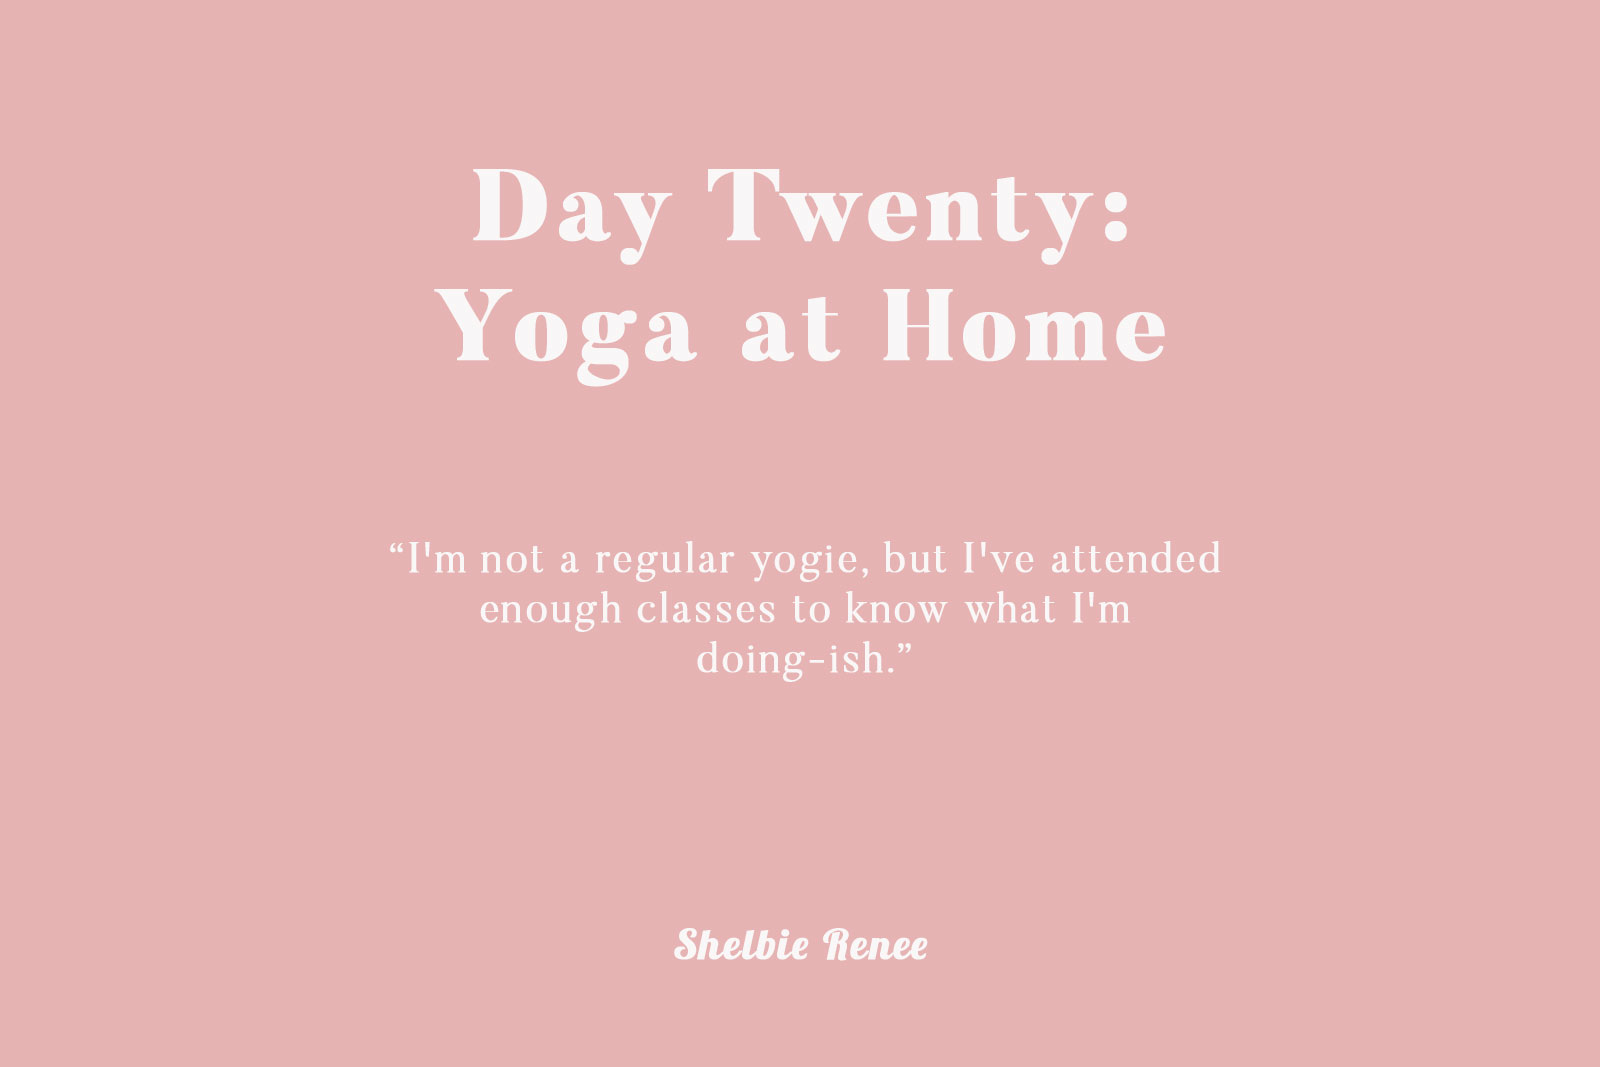 After my run — even though it wasn't very long — I was sore! I needed to  stretch my legs, so yoga was an easy decision. I'm not a regular yogie, ...